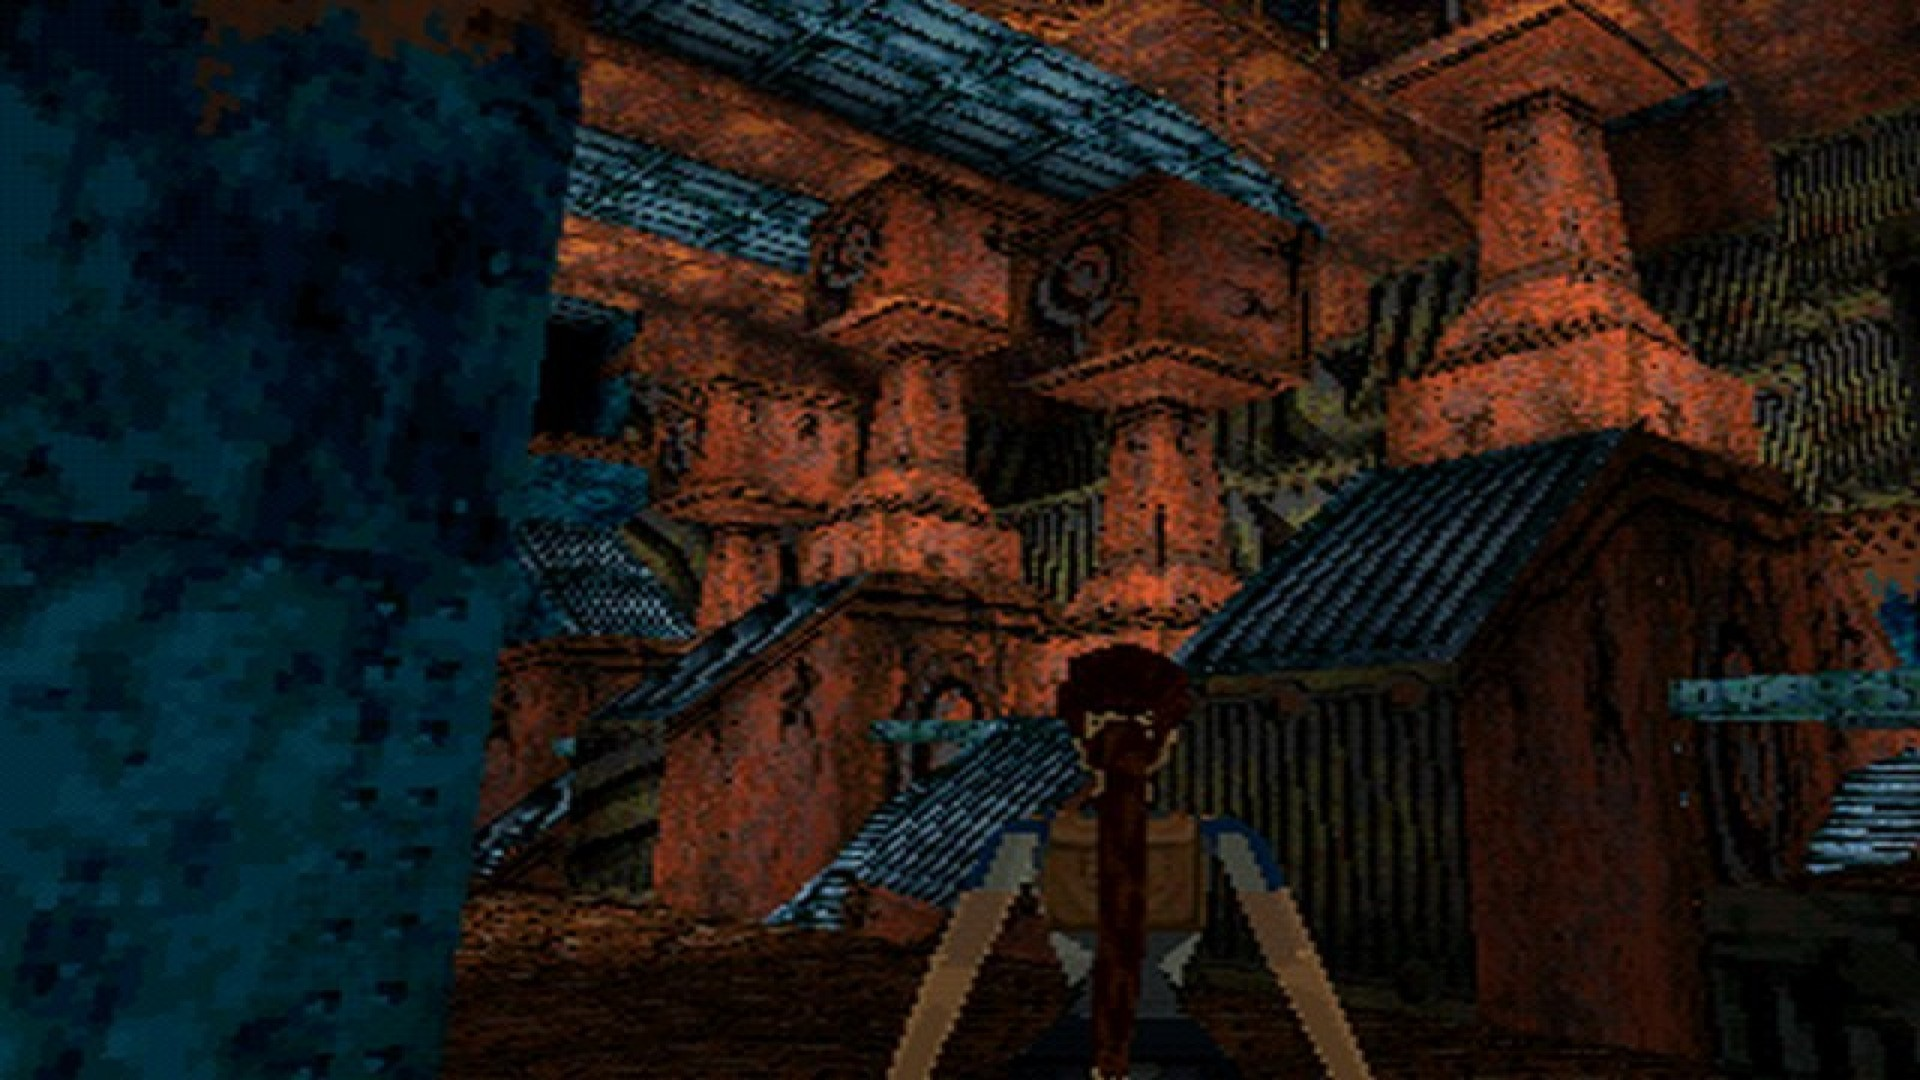 Square Enix Re Release Original Tomb Raider Games Gamewatcher